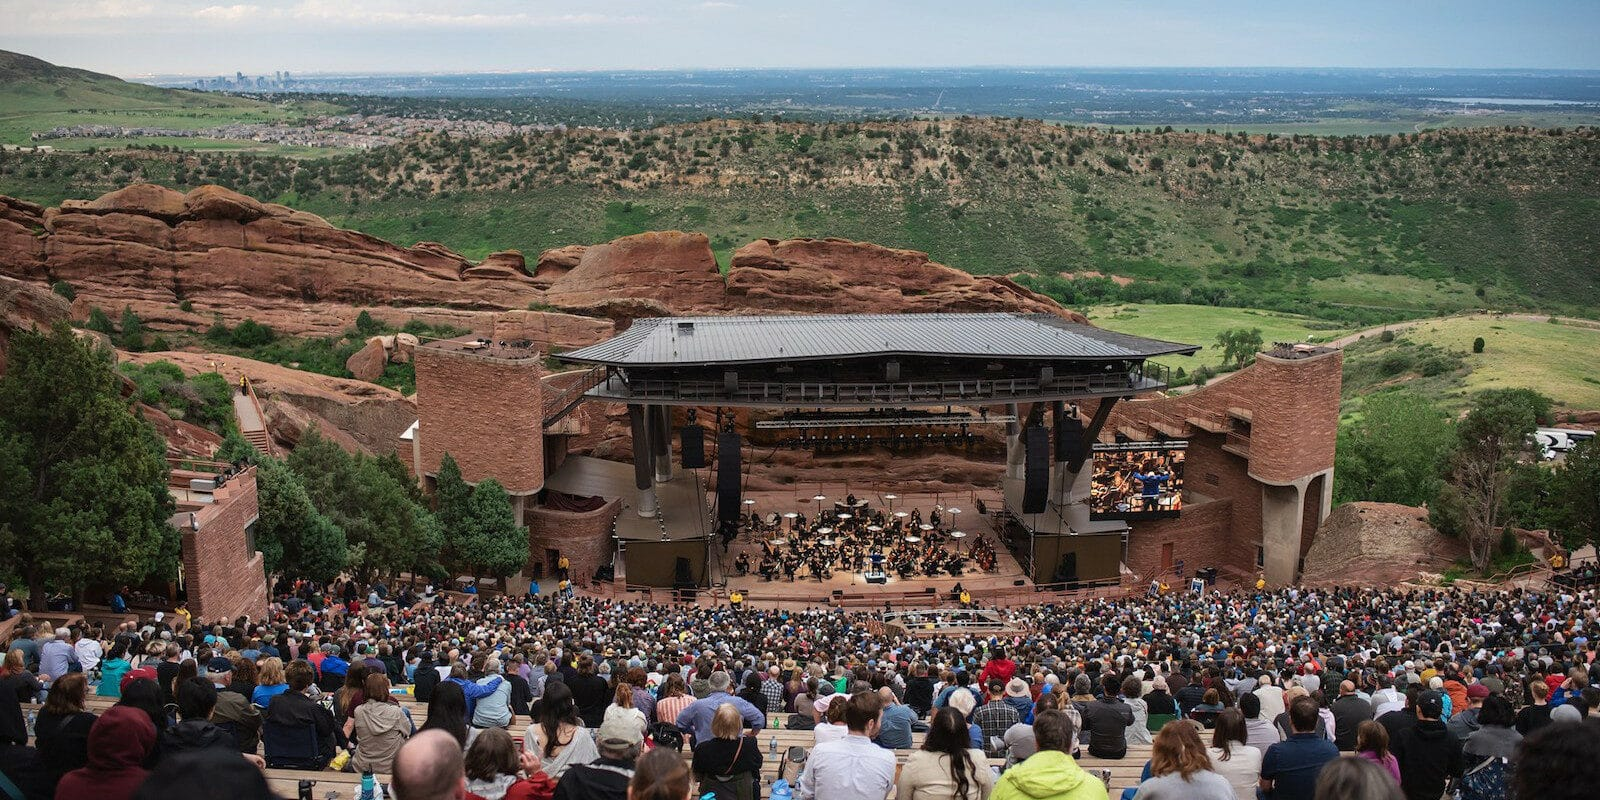 Image of the Red Rock Amphitheatre in Morrison, CO